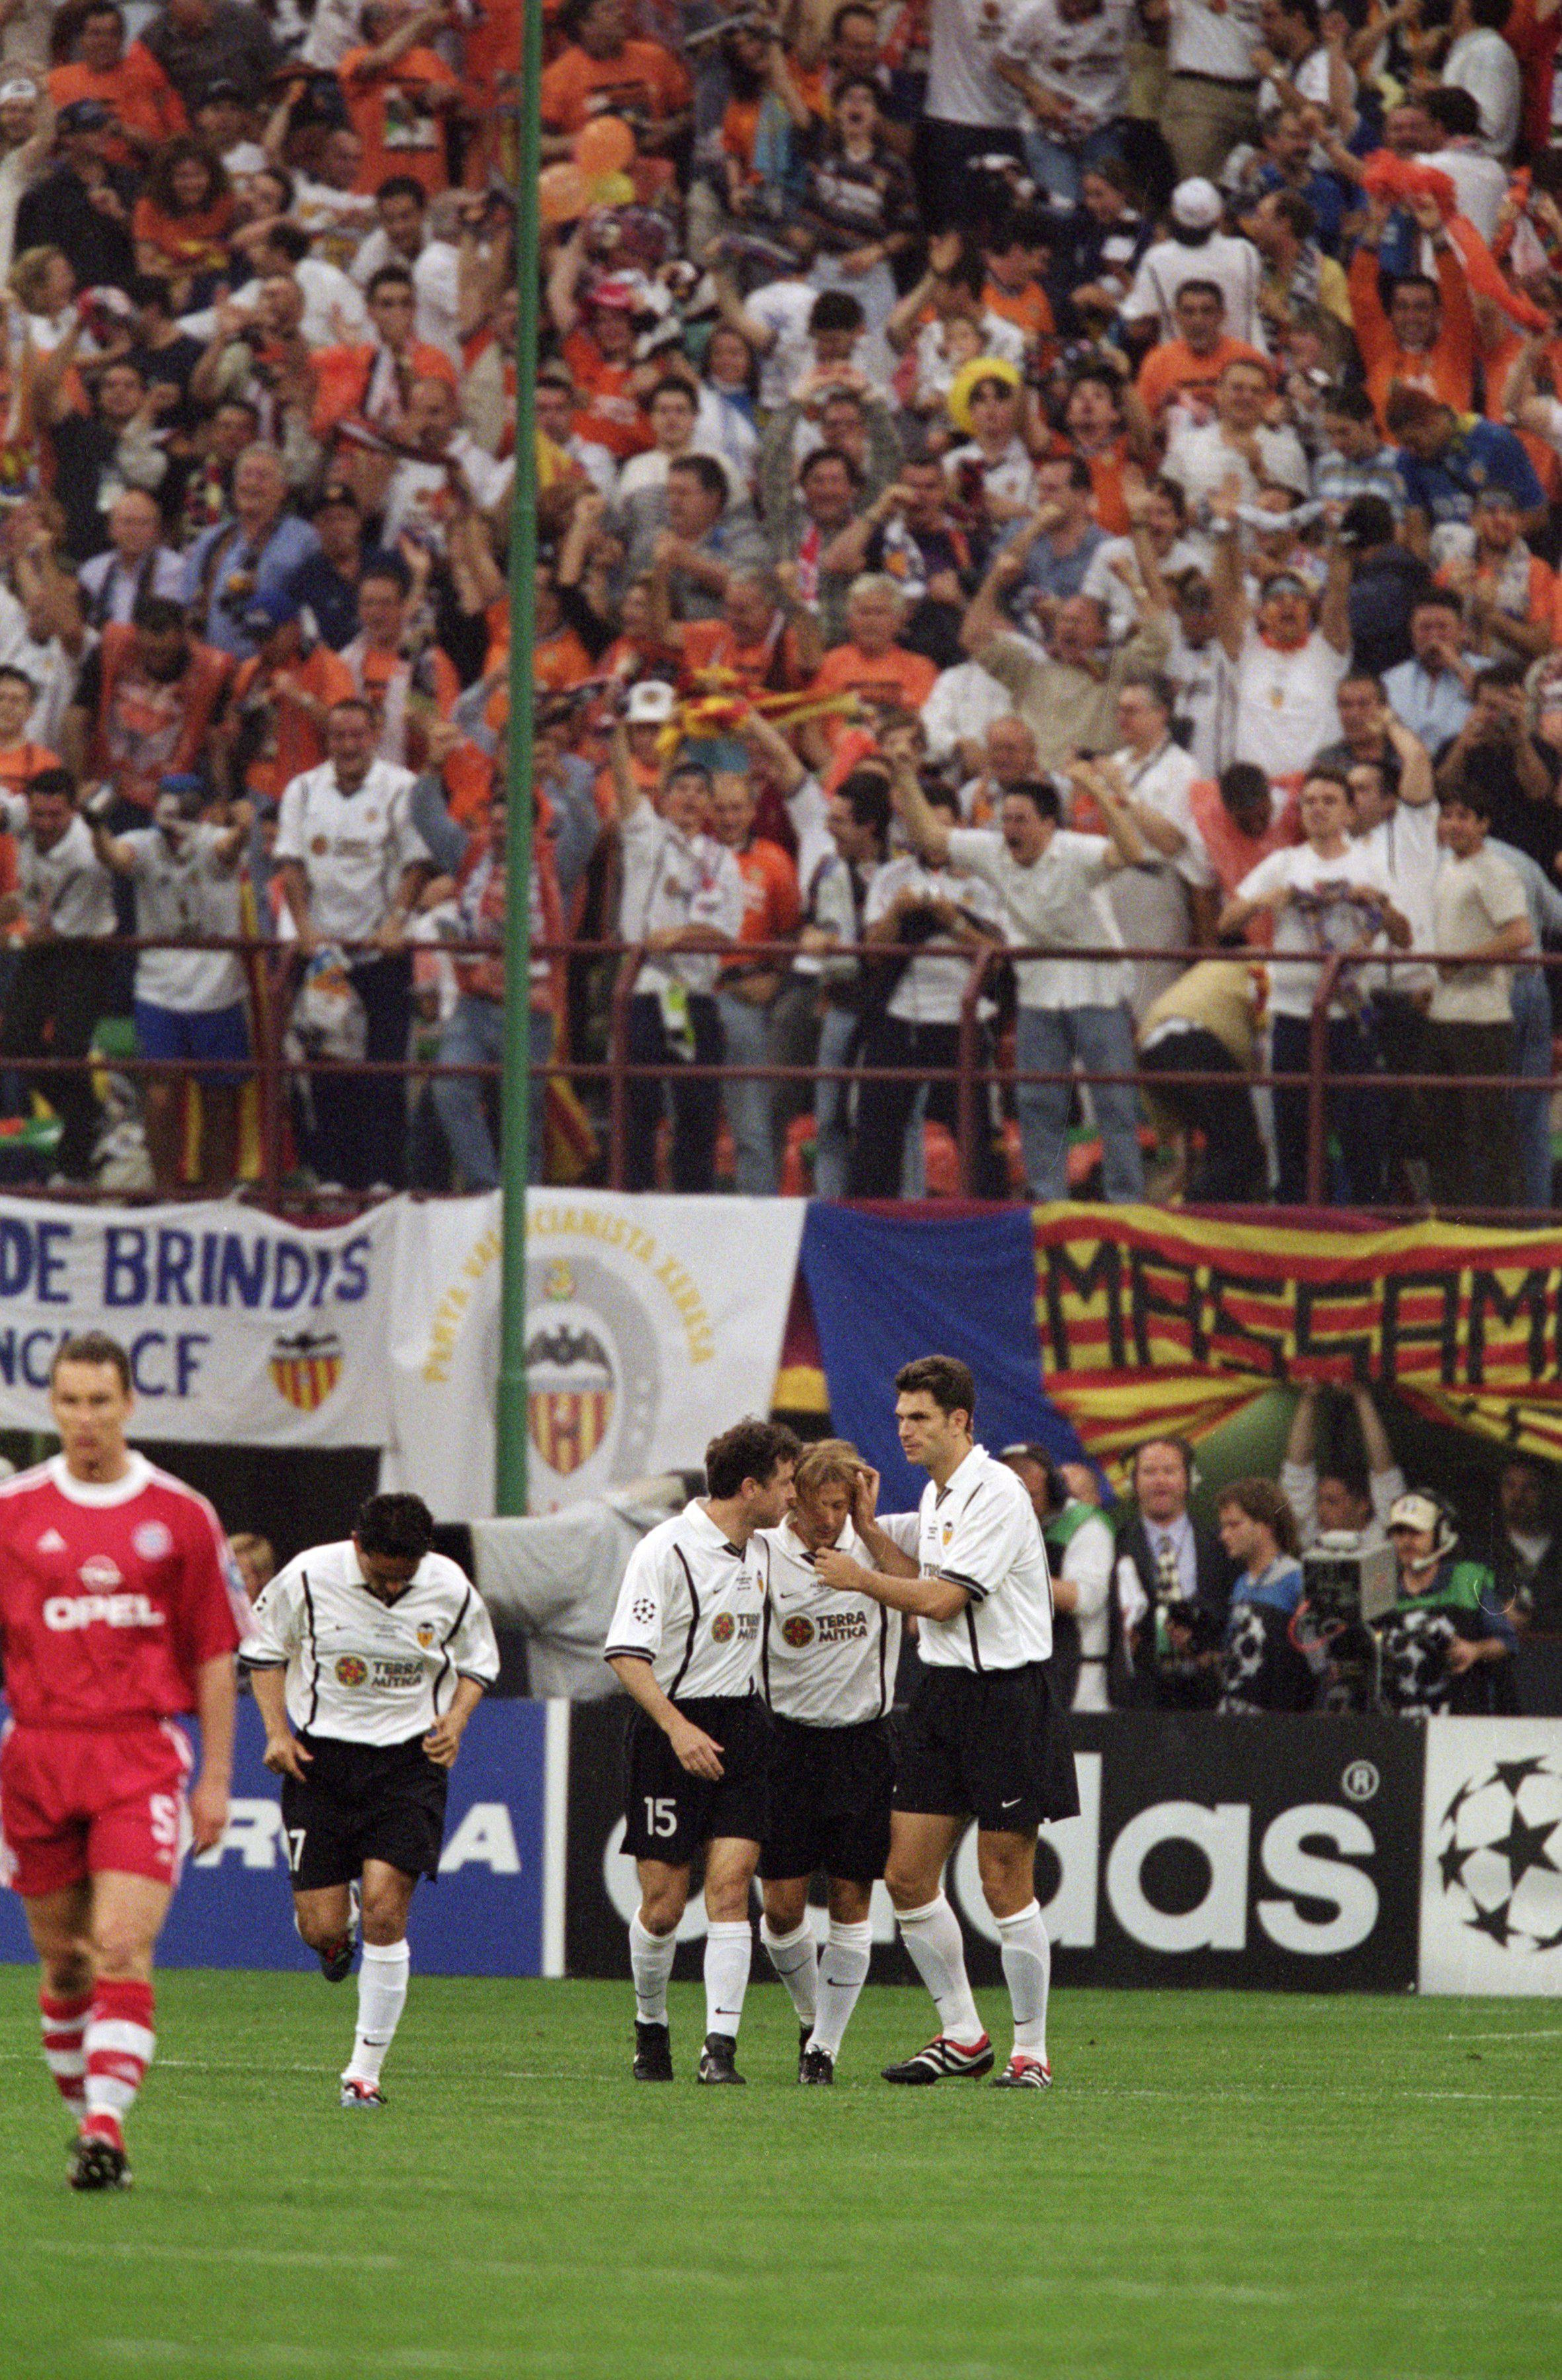 Mendieta's penalty put Valencia 1-0 after just three minutes against Bayern Munich